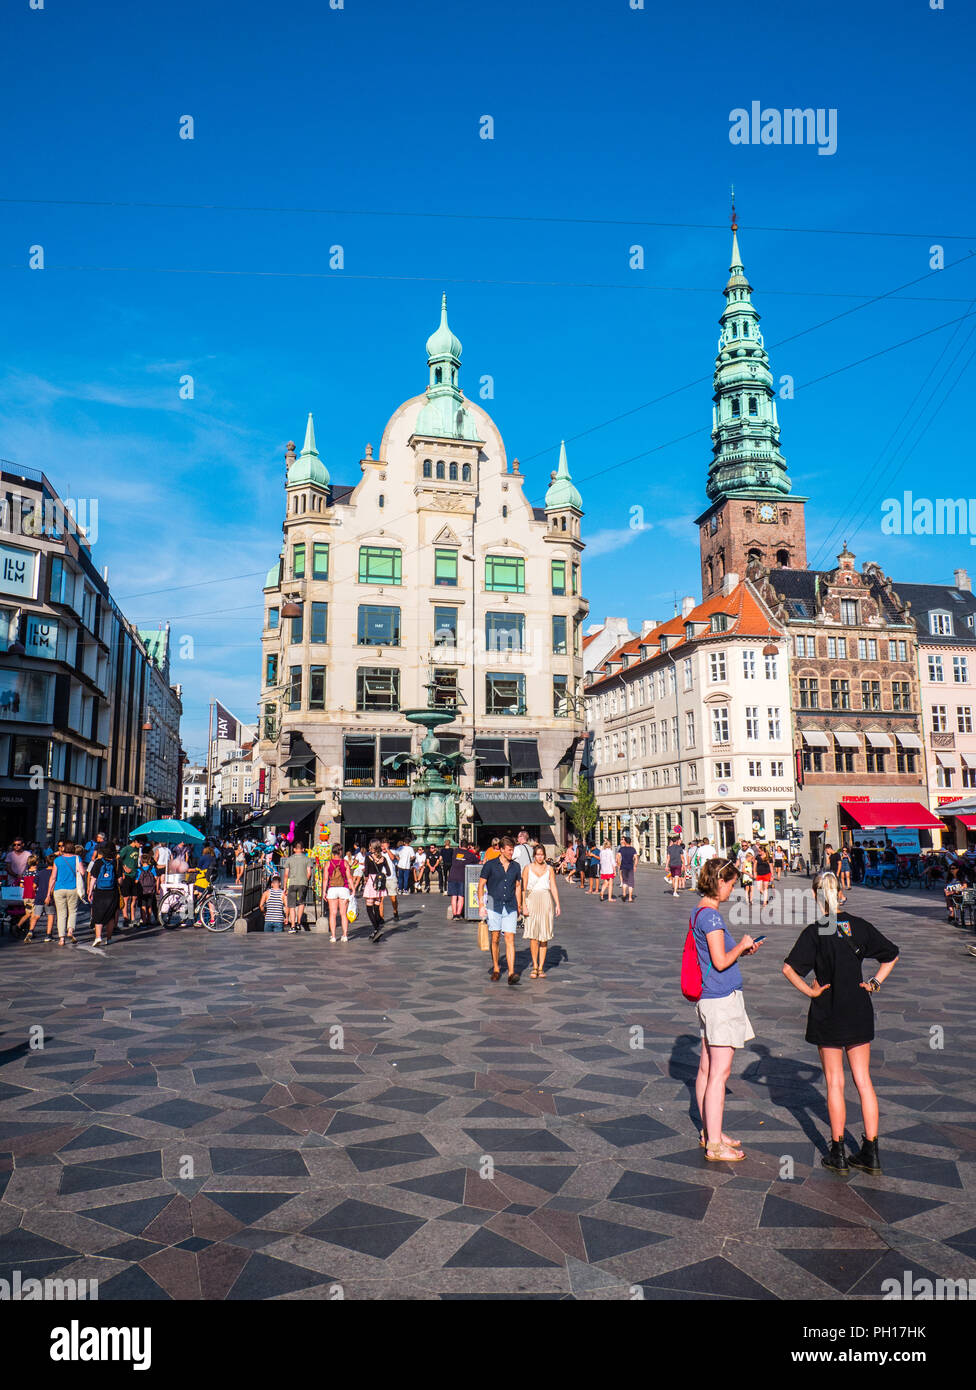 Tourists at The Stork Fountain, Amagertorv Square, Copenhagen, Zealand, Denmark, Europe. - Stock Image